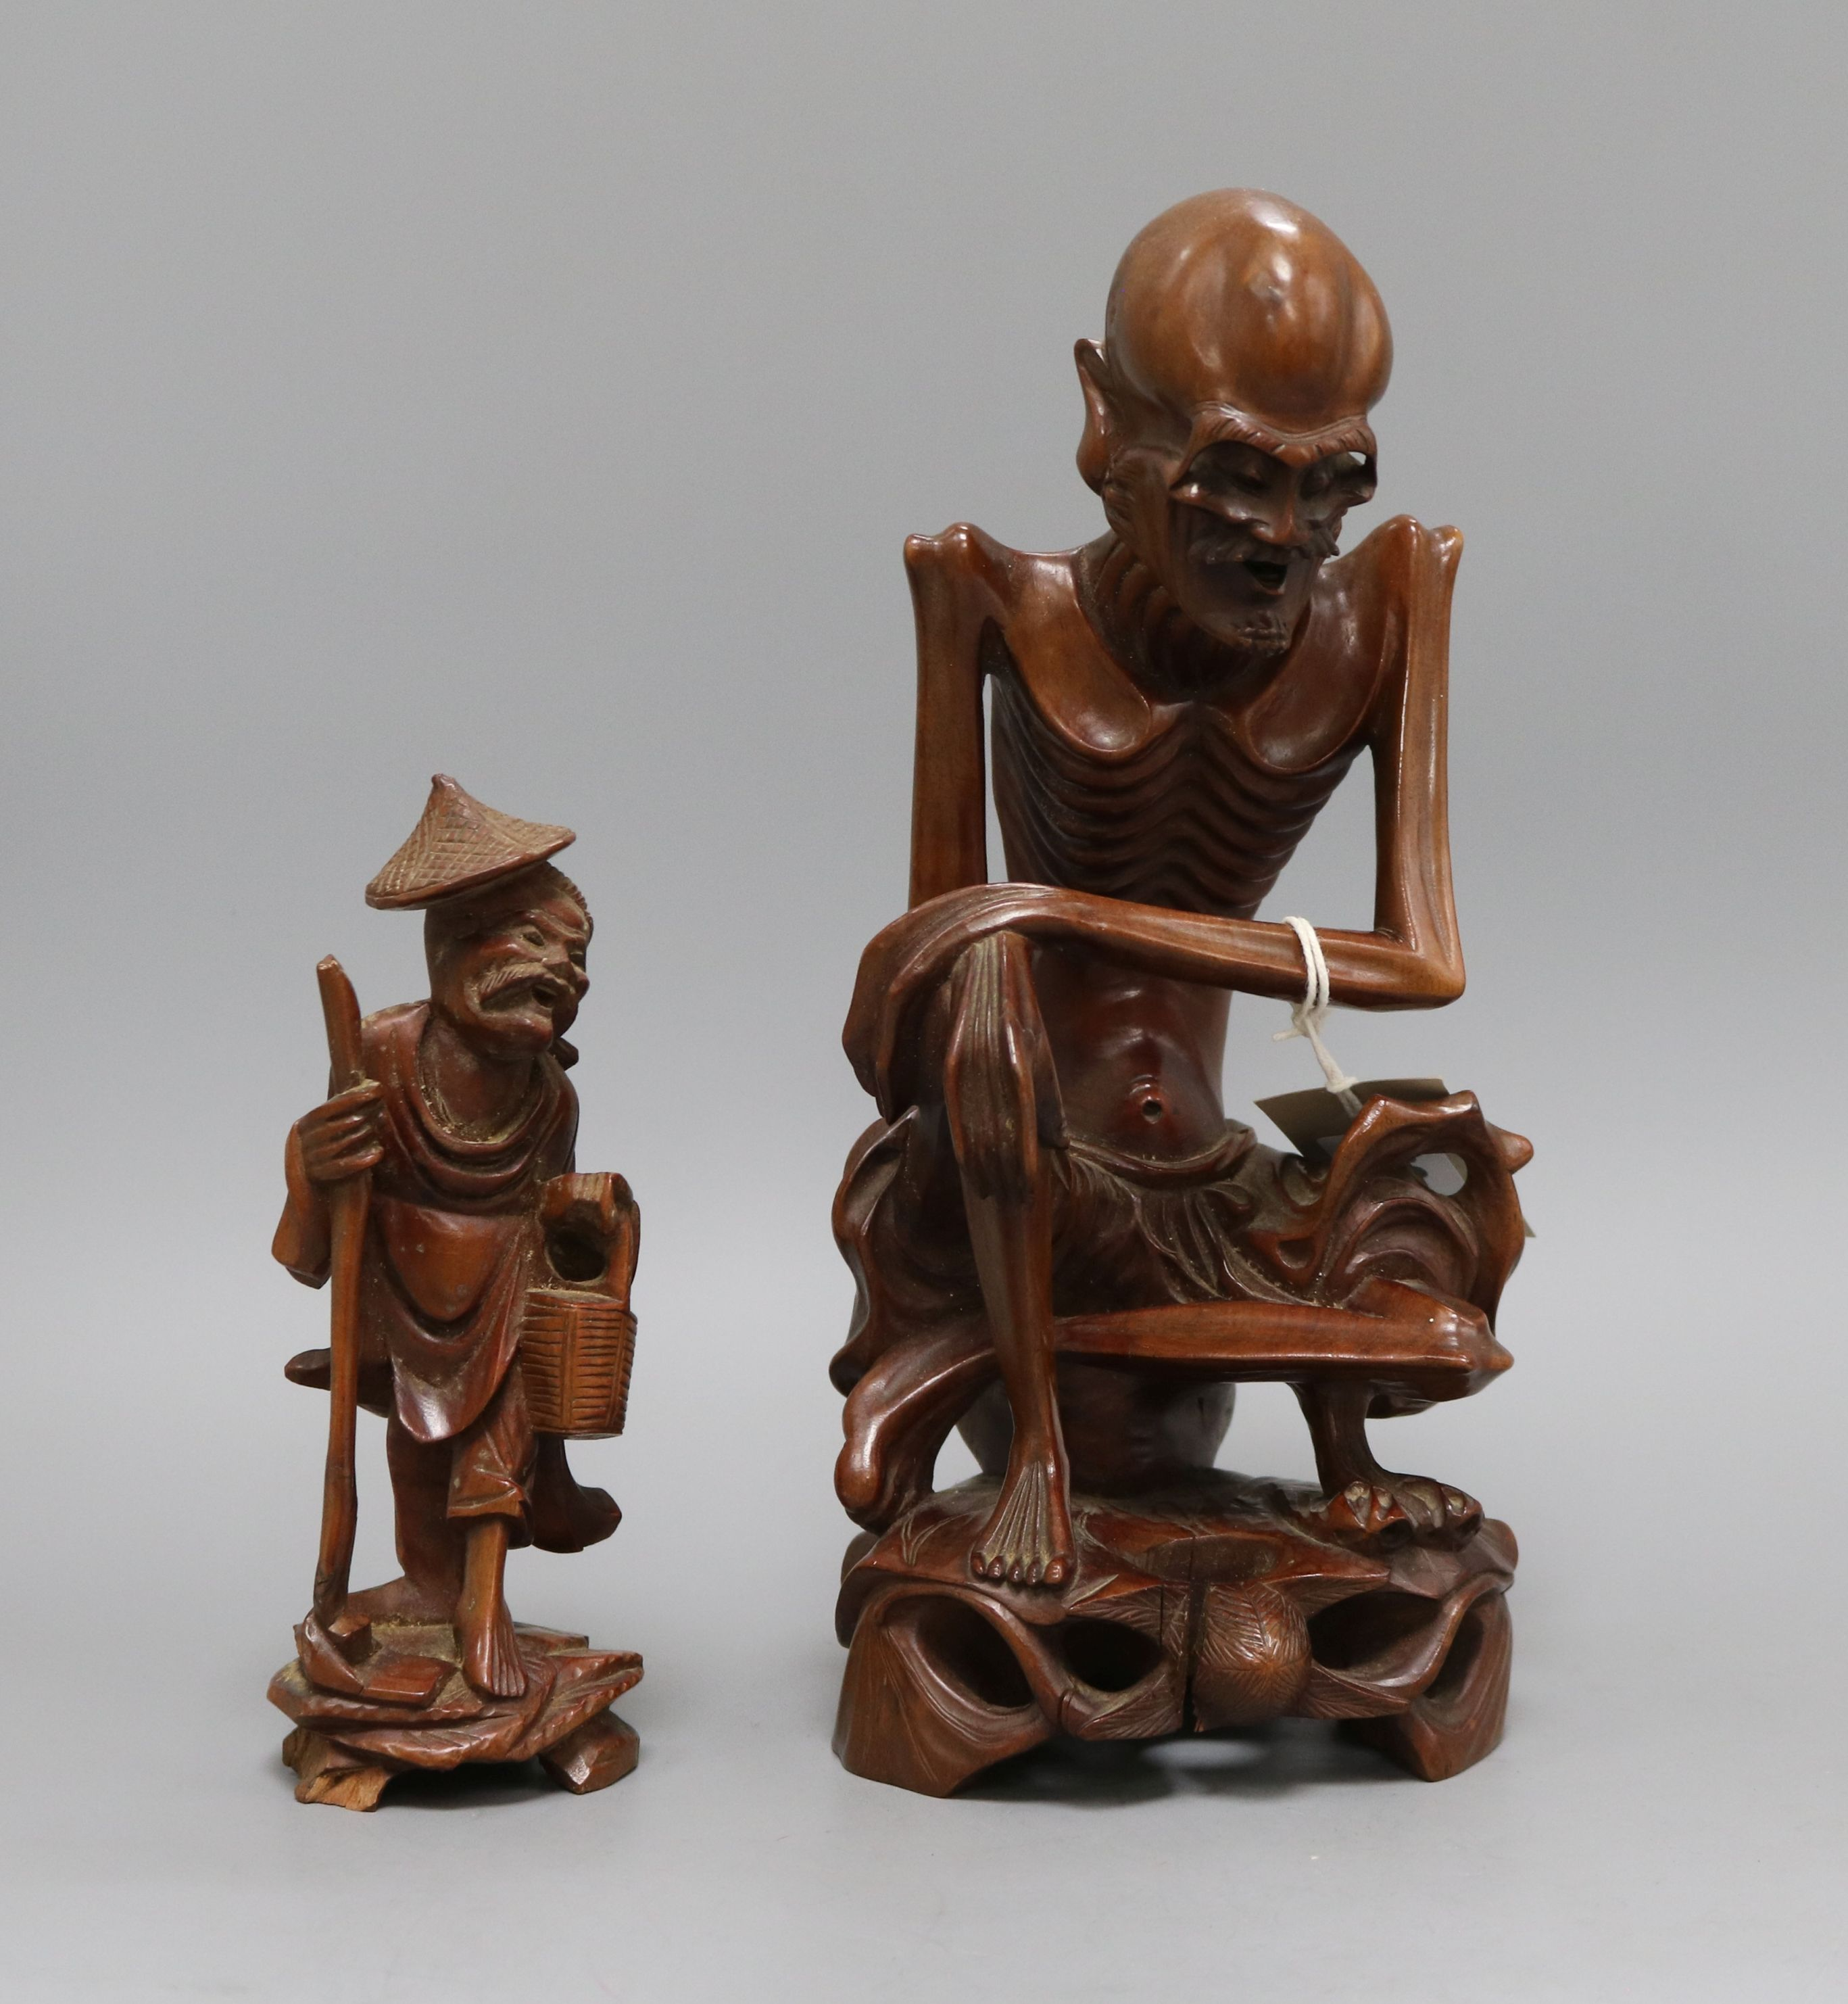 Lot 30 - Two Chinese wooden figural carvings tallest 28cm